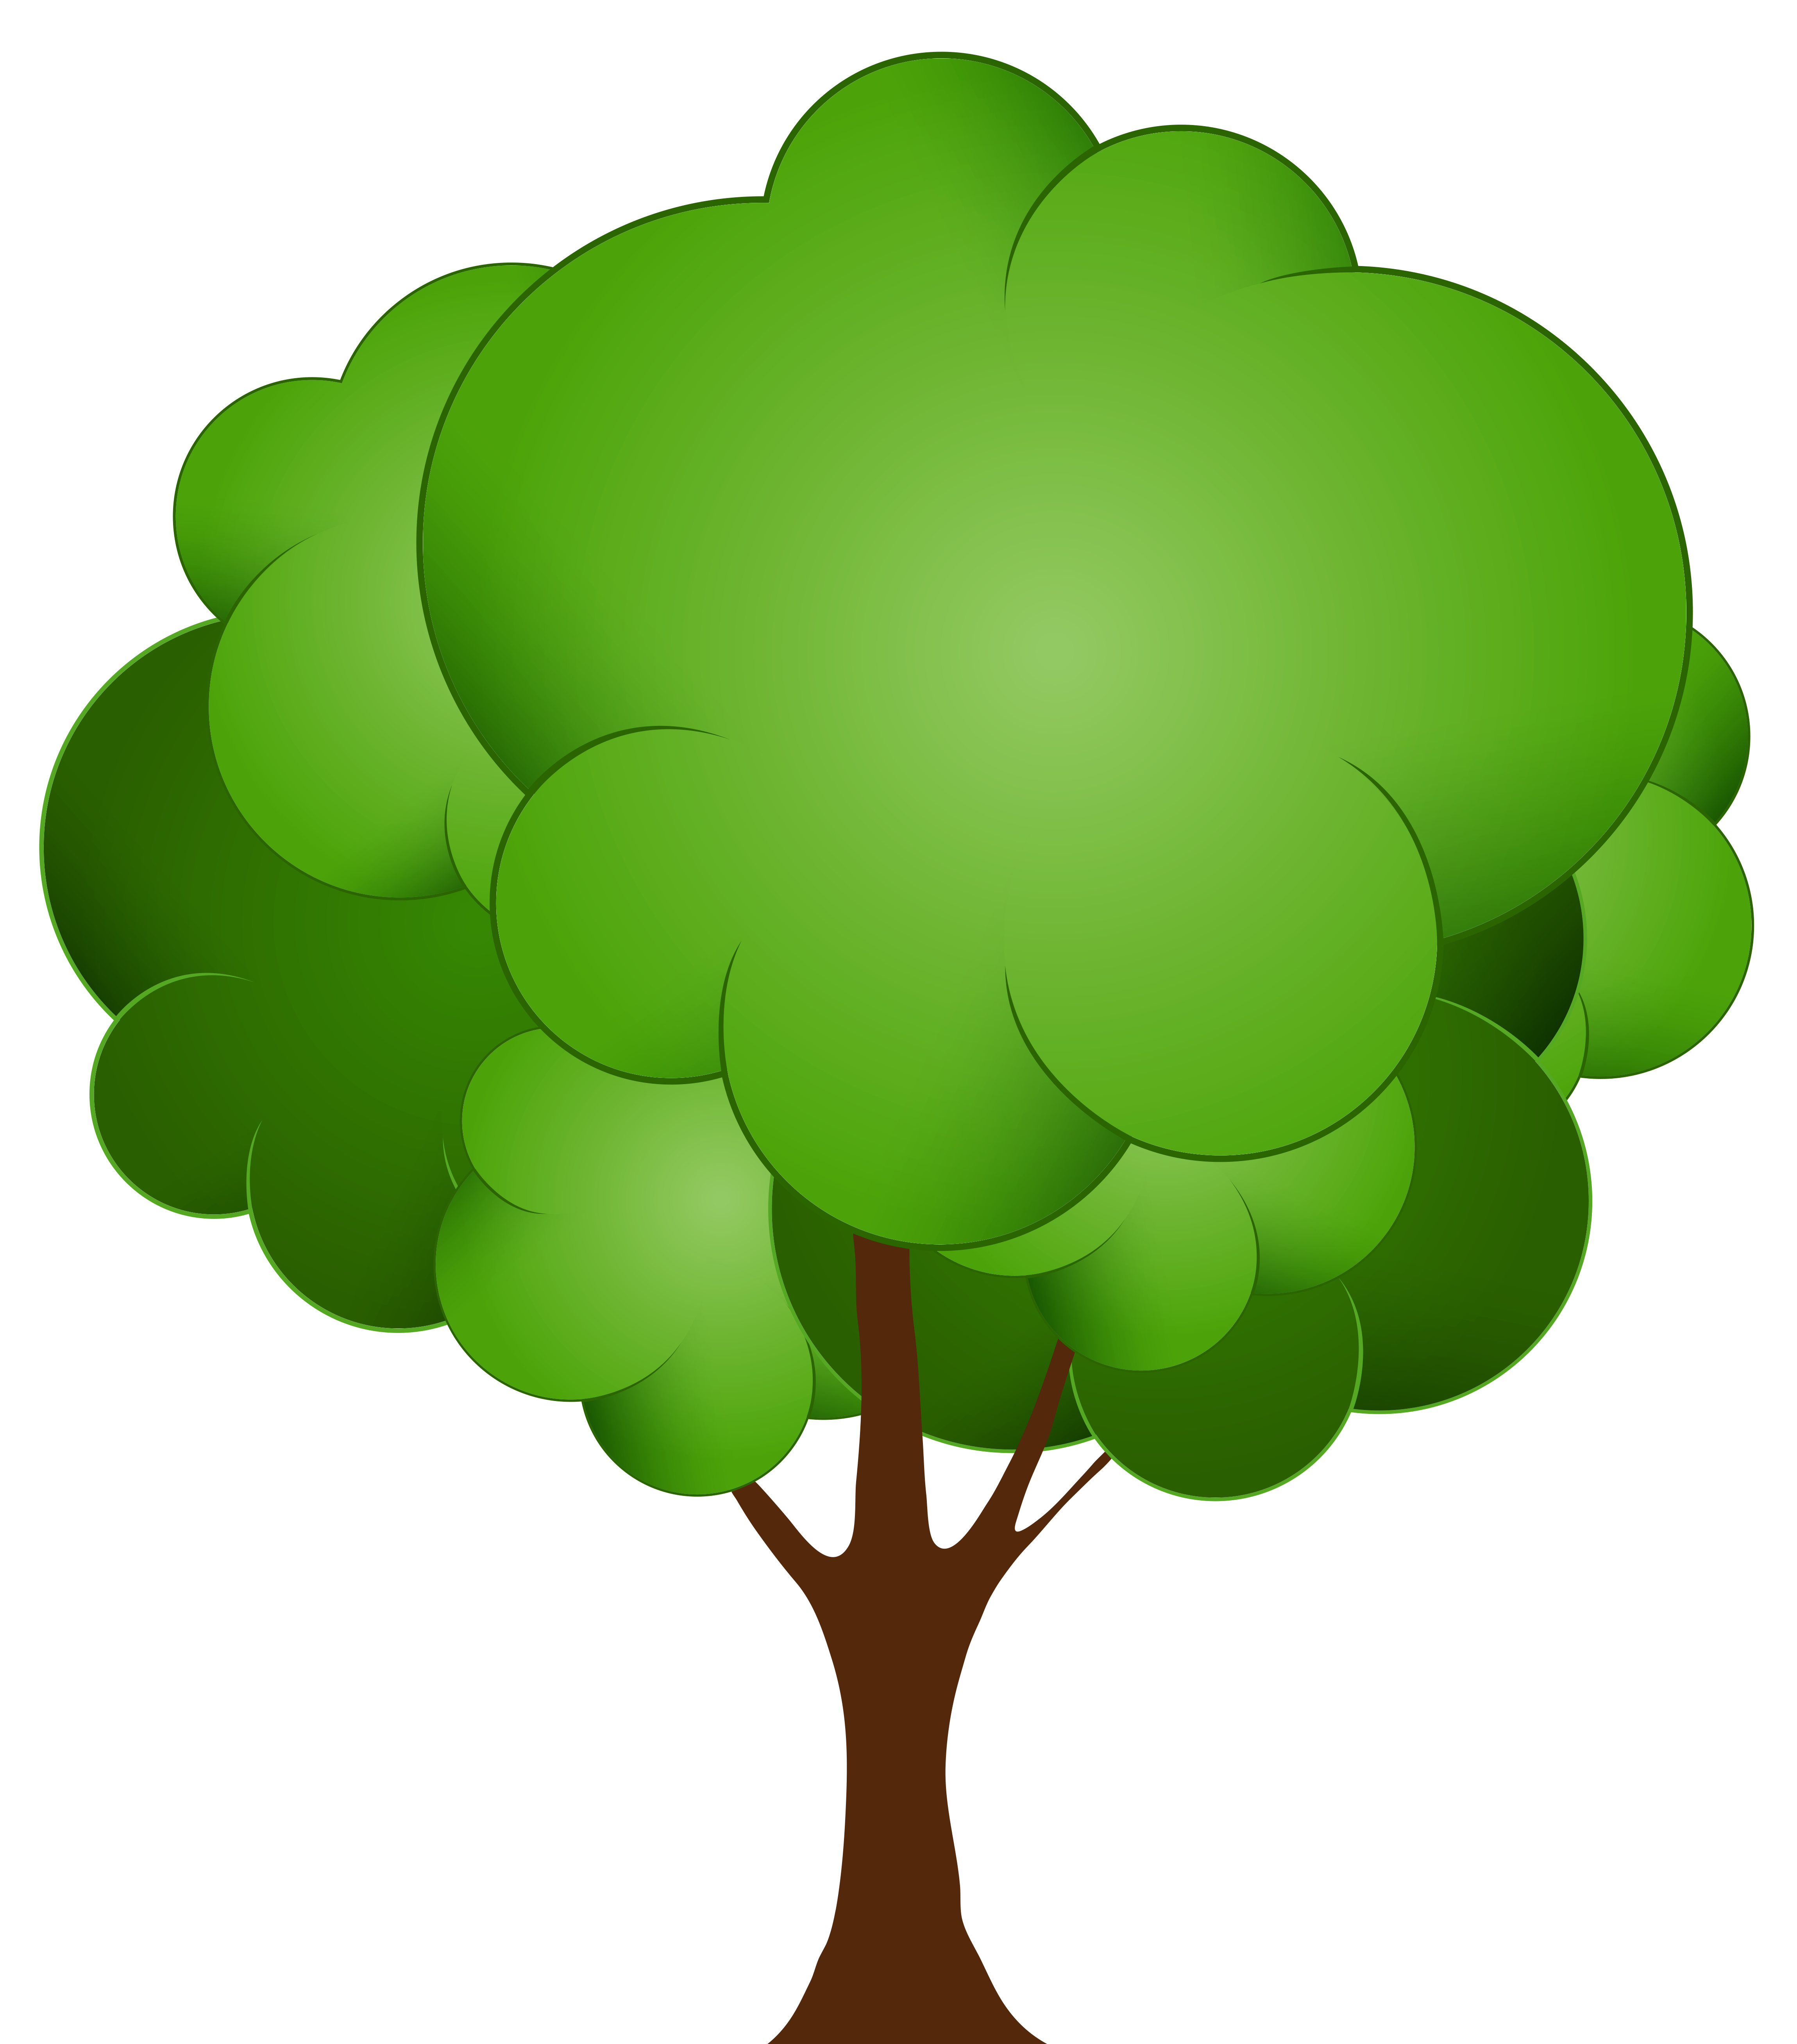 tree clipart for kids at getdrawings com free for personal use rh getdrawings com clip art trees and flowers clip art trees free